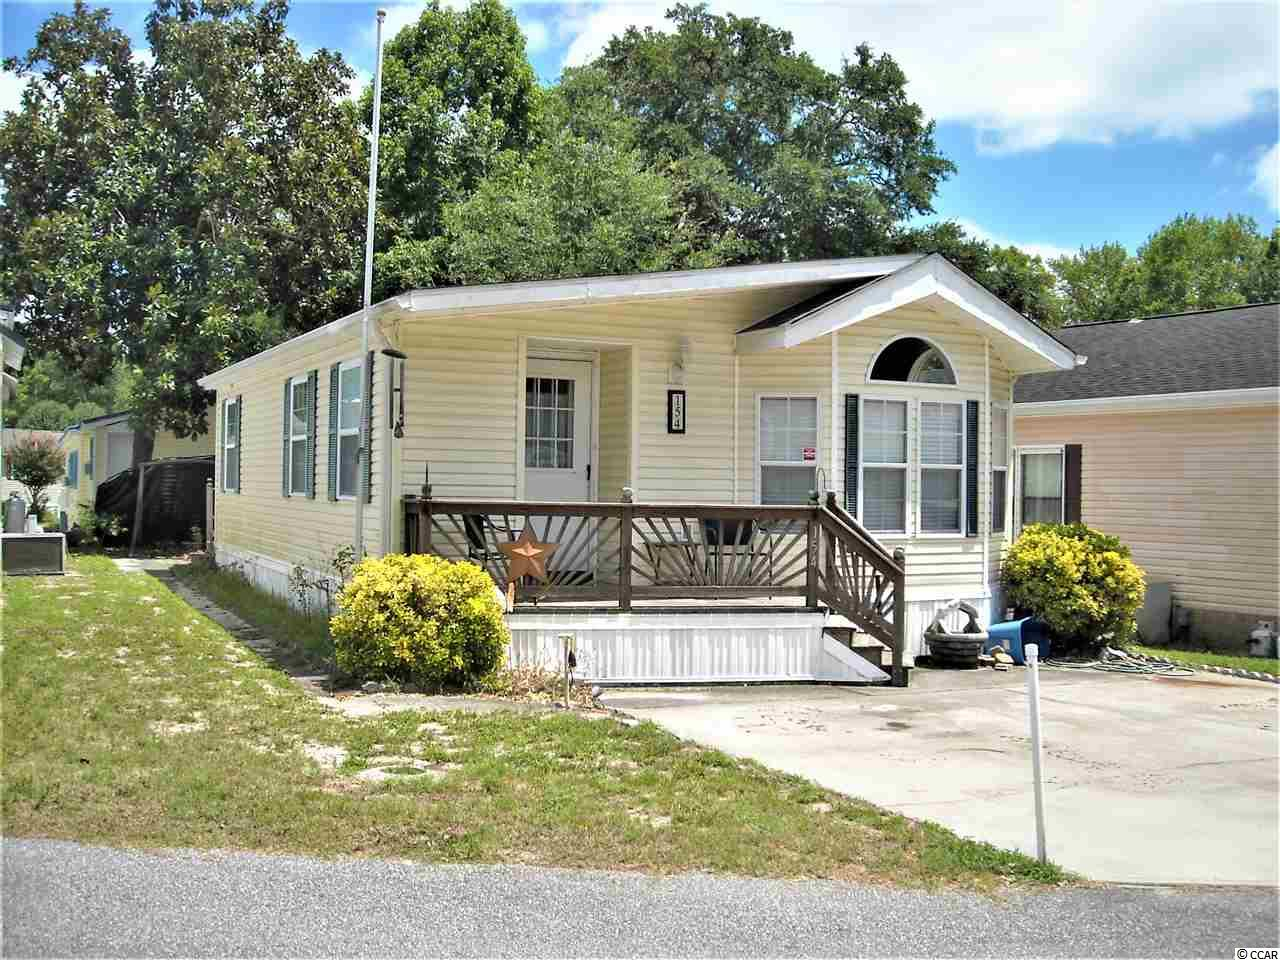 RV community located on the marsh overlooking north end of Cherry Grove beach. Community offers several lakes/ponds, 2 heated pools, Jacuzzi, picnic areas, basketball, horseshoes, tennis courts, club house, mini golf, beautiful sunrise views. This 2 bedroom 2 bath home is unique because it has 2 water heaters, which means no cold showers, and the laundry is inside, versus in the storage building, which many homes have. This casual lifestyle is made easier by driving your golf cart to local spots of interest. Enjoy this home as a retreat, or, as many neighbors do, a full time residence. Start relaxing!